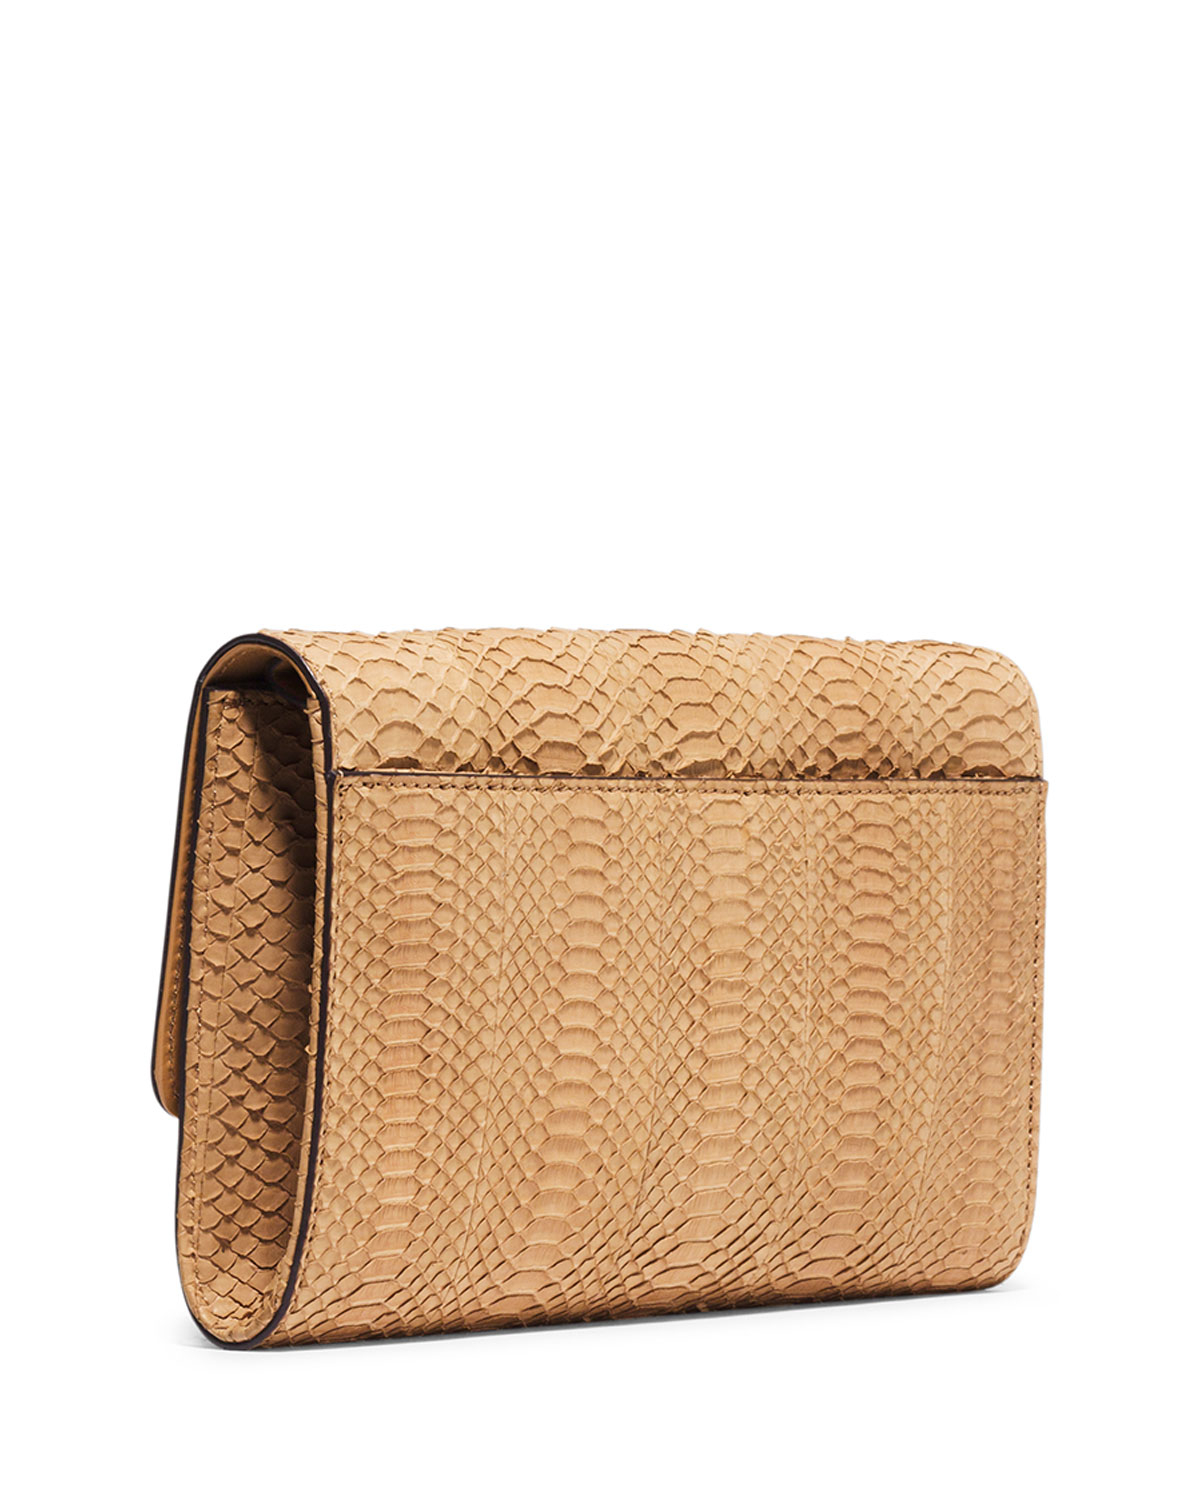 michael kors gia sueded snake clutch bag with lock in brown lyst. Black Bedroom Furniture Sets. Home Design Ideas